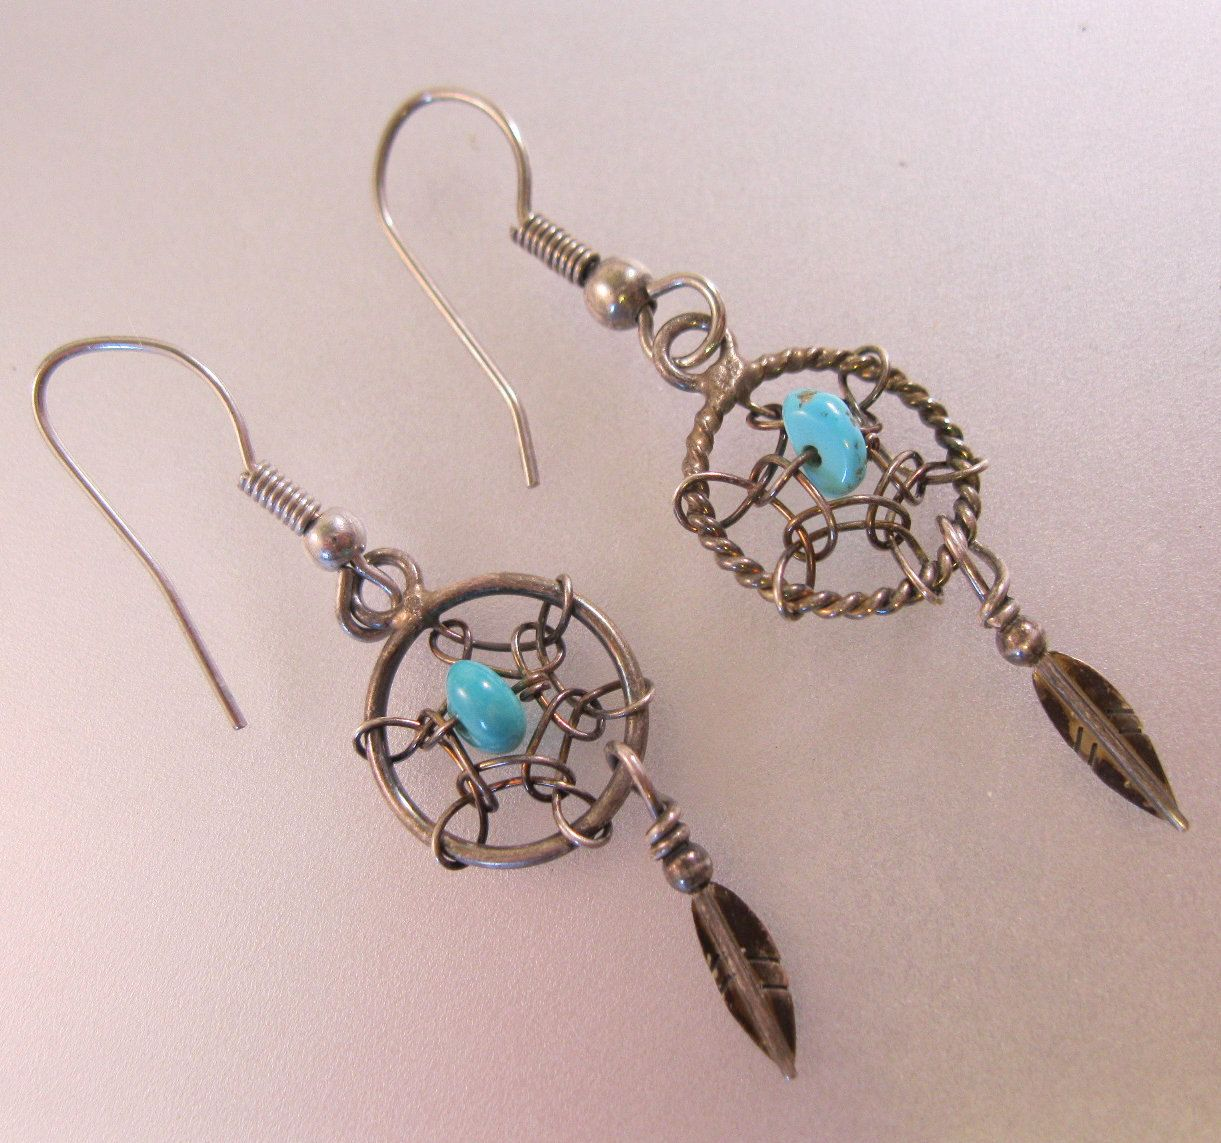 $1999 Native American Dream Catcher Turquoise Feather Earrings Drop Dangle  Sterling Silver Vintage Jewelry Jewellery By